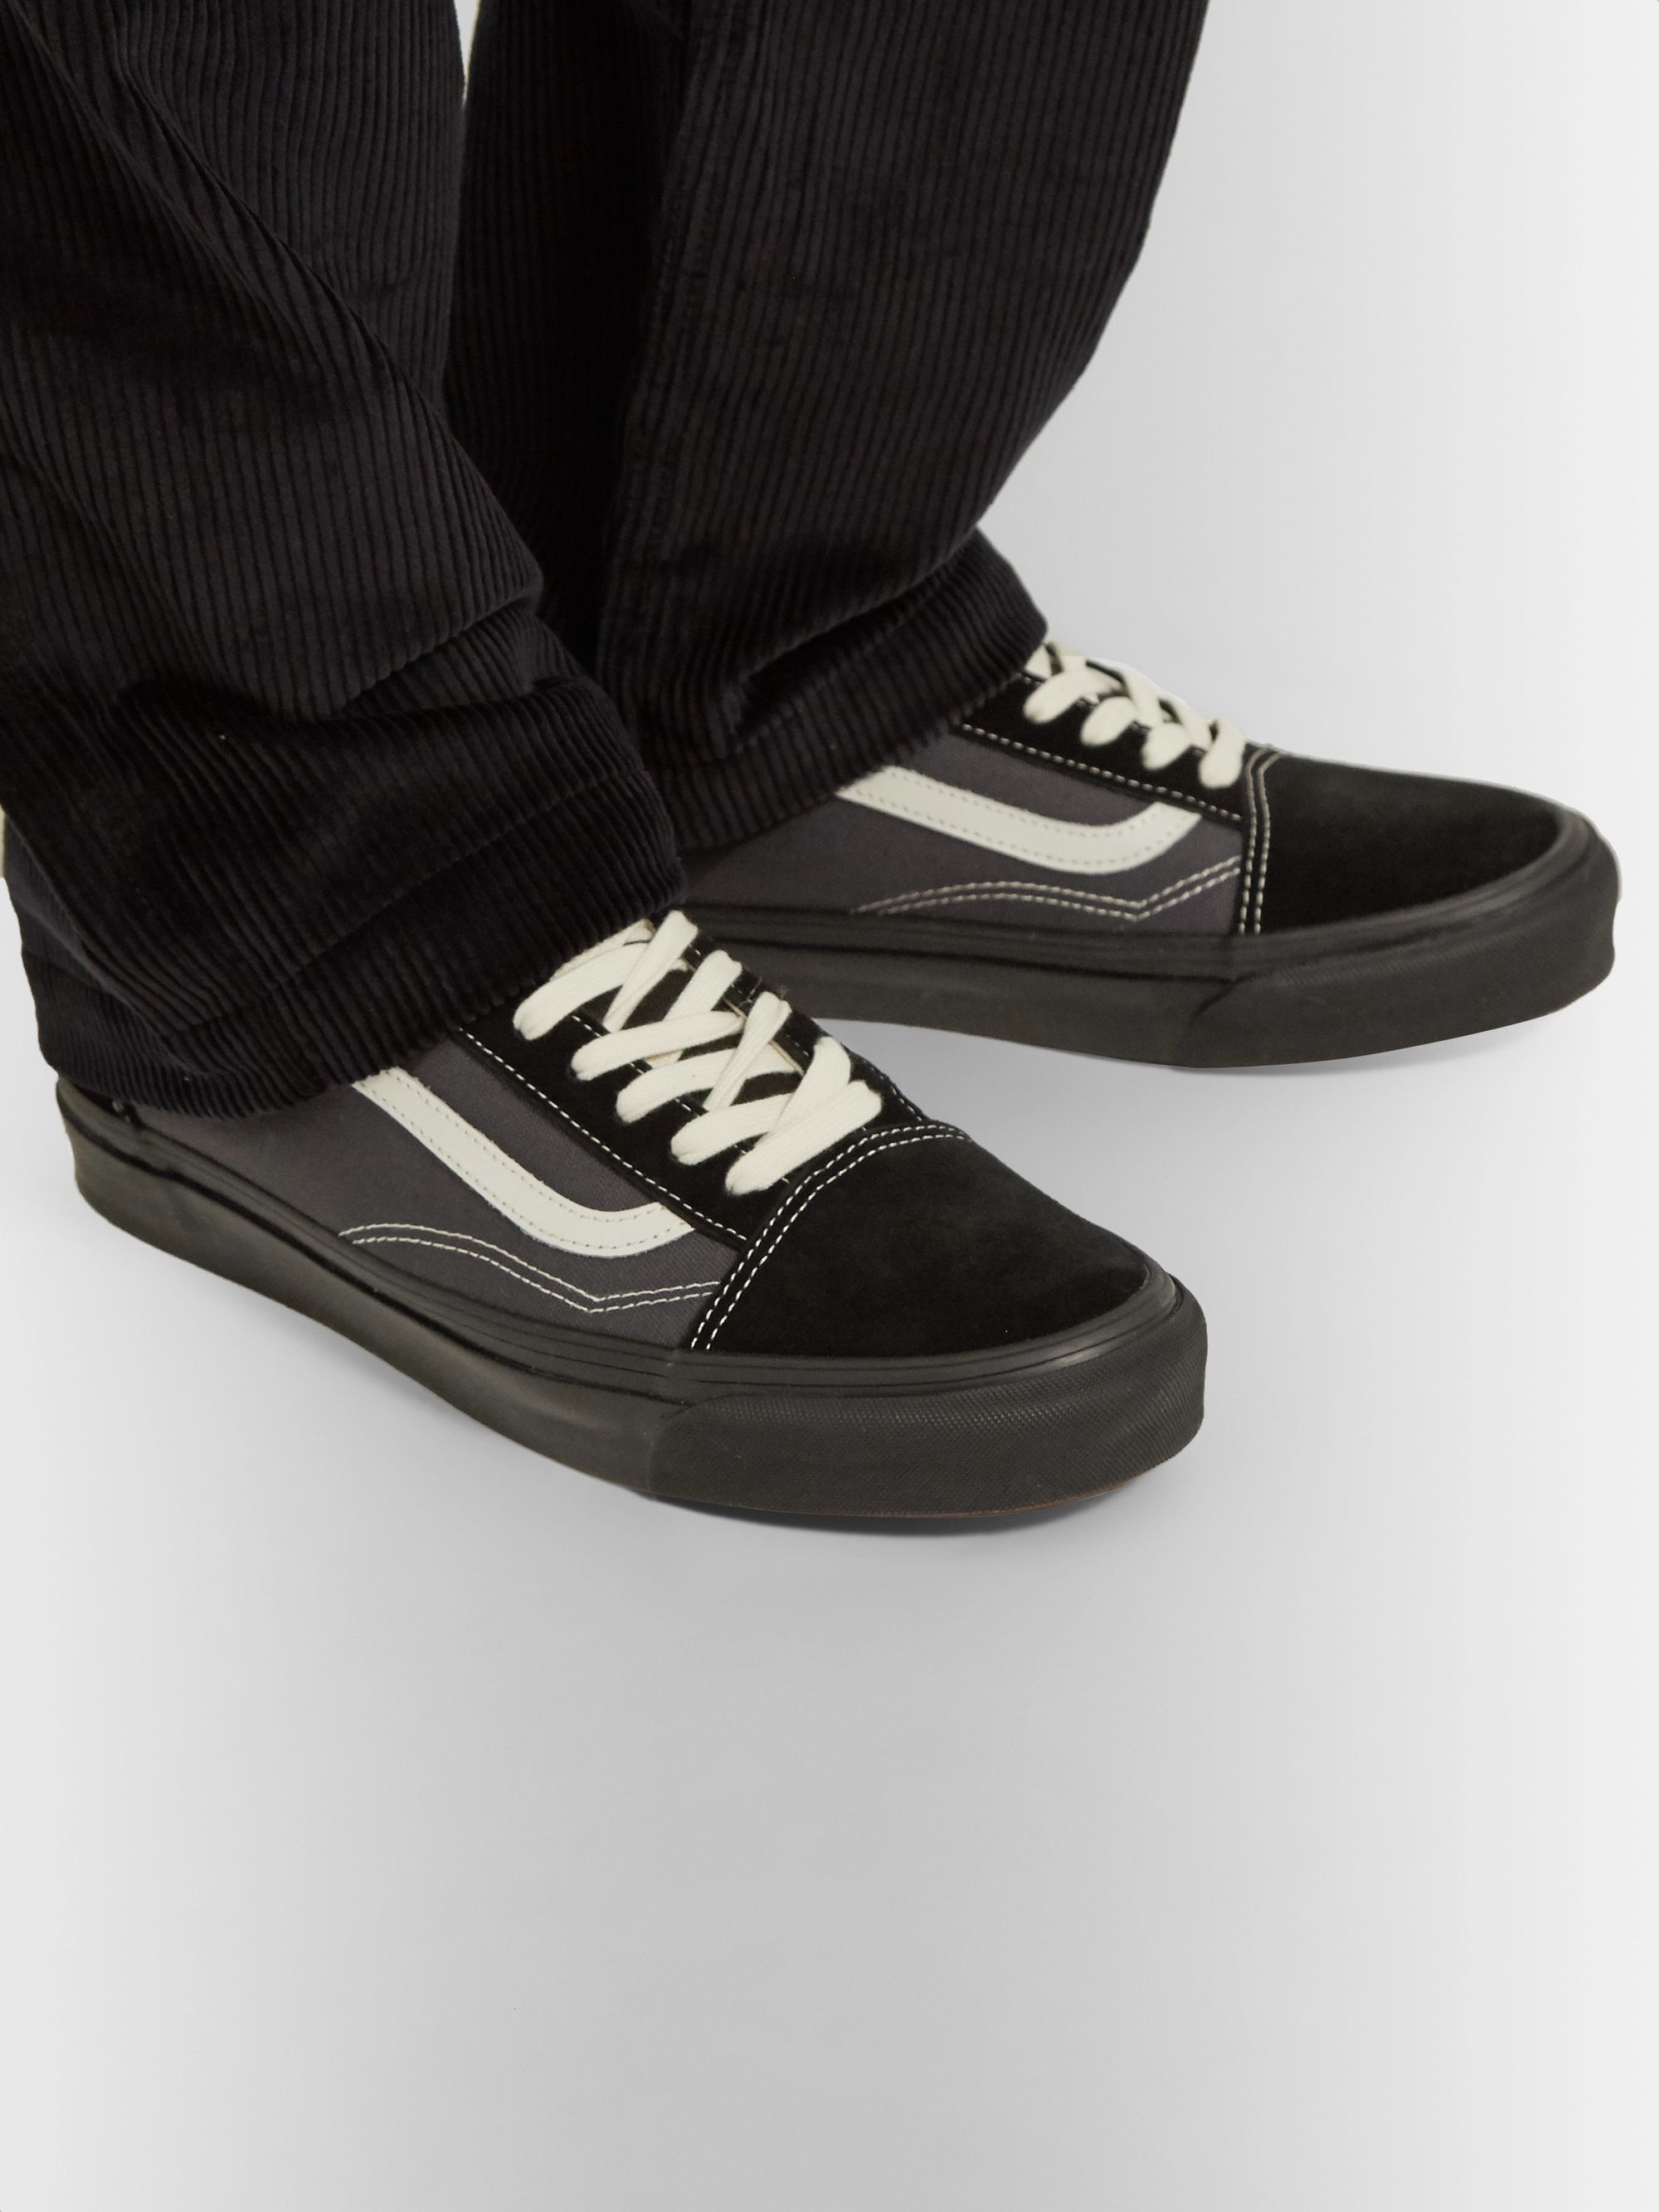 UA OG Old Skool LX Leather Trimmed Canvas and Suede Sneakers